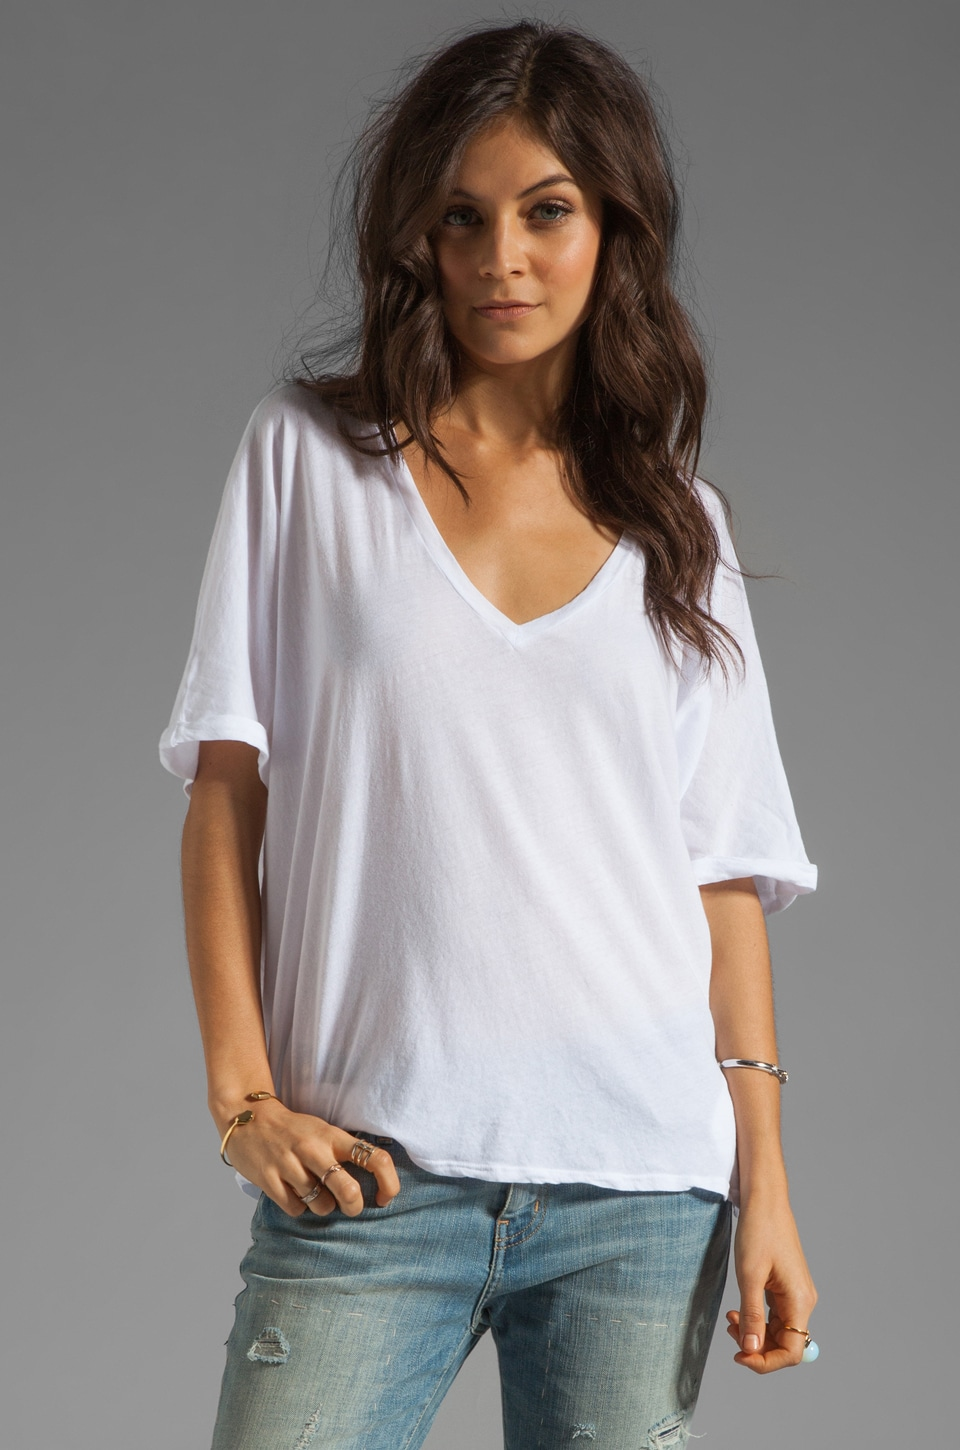 Velvet by Graham & Spencer Lucia Sheer Jersey V Neck Top in White